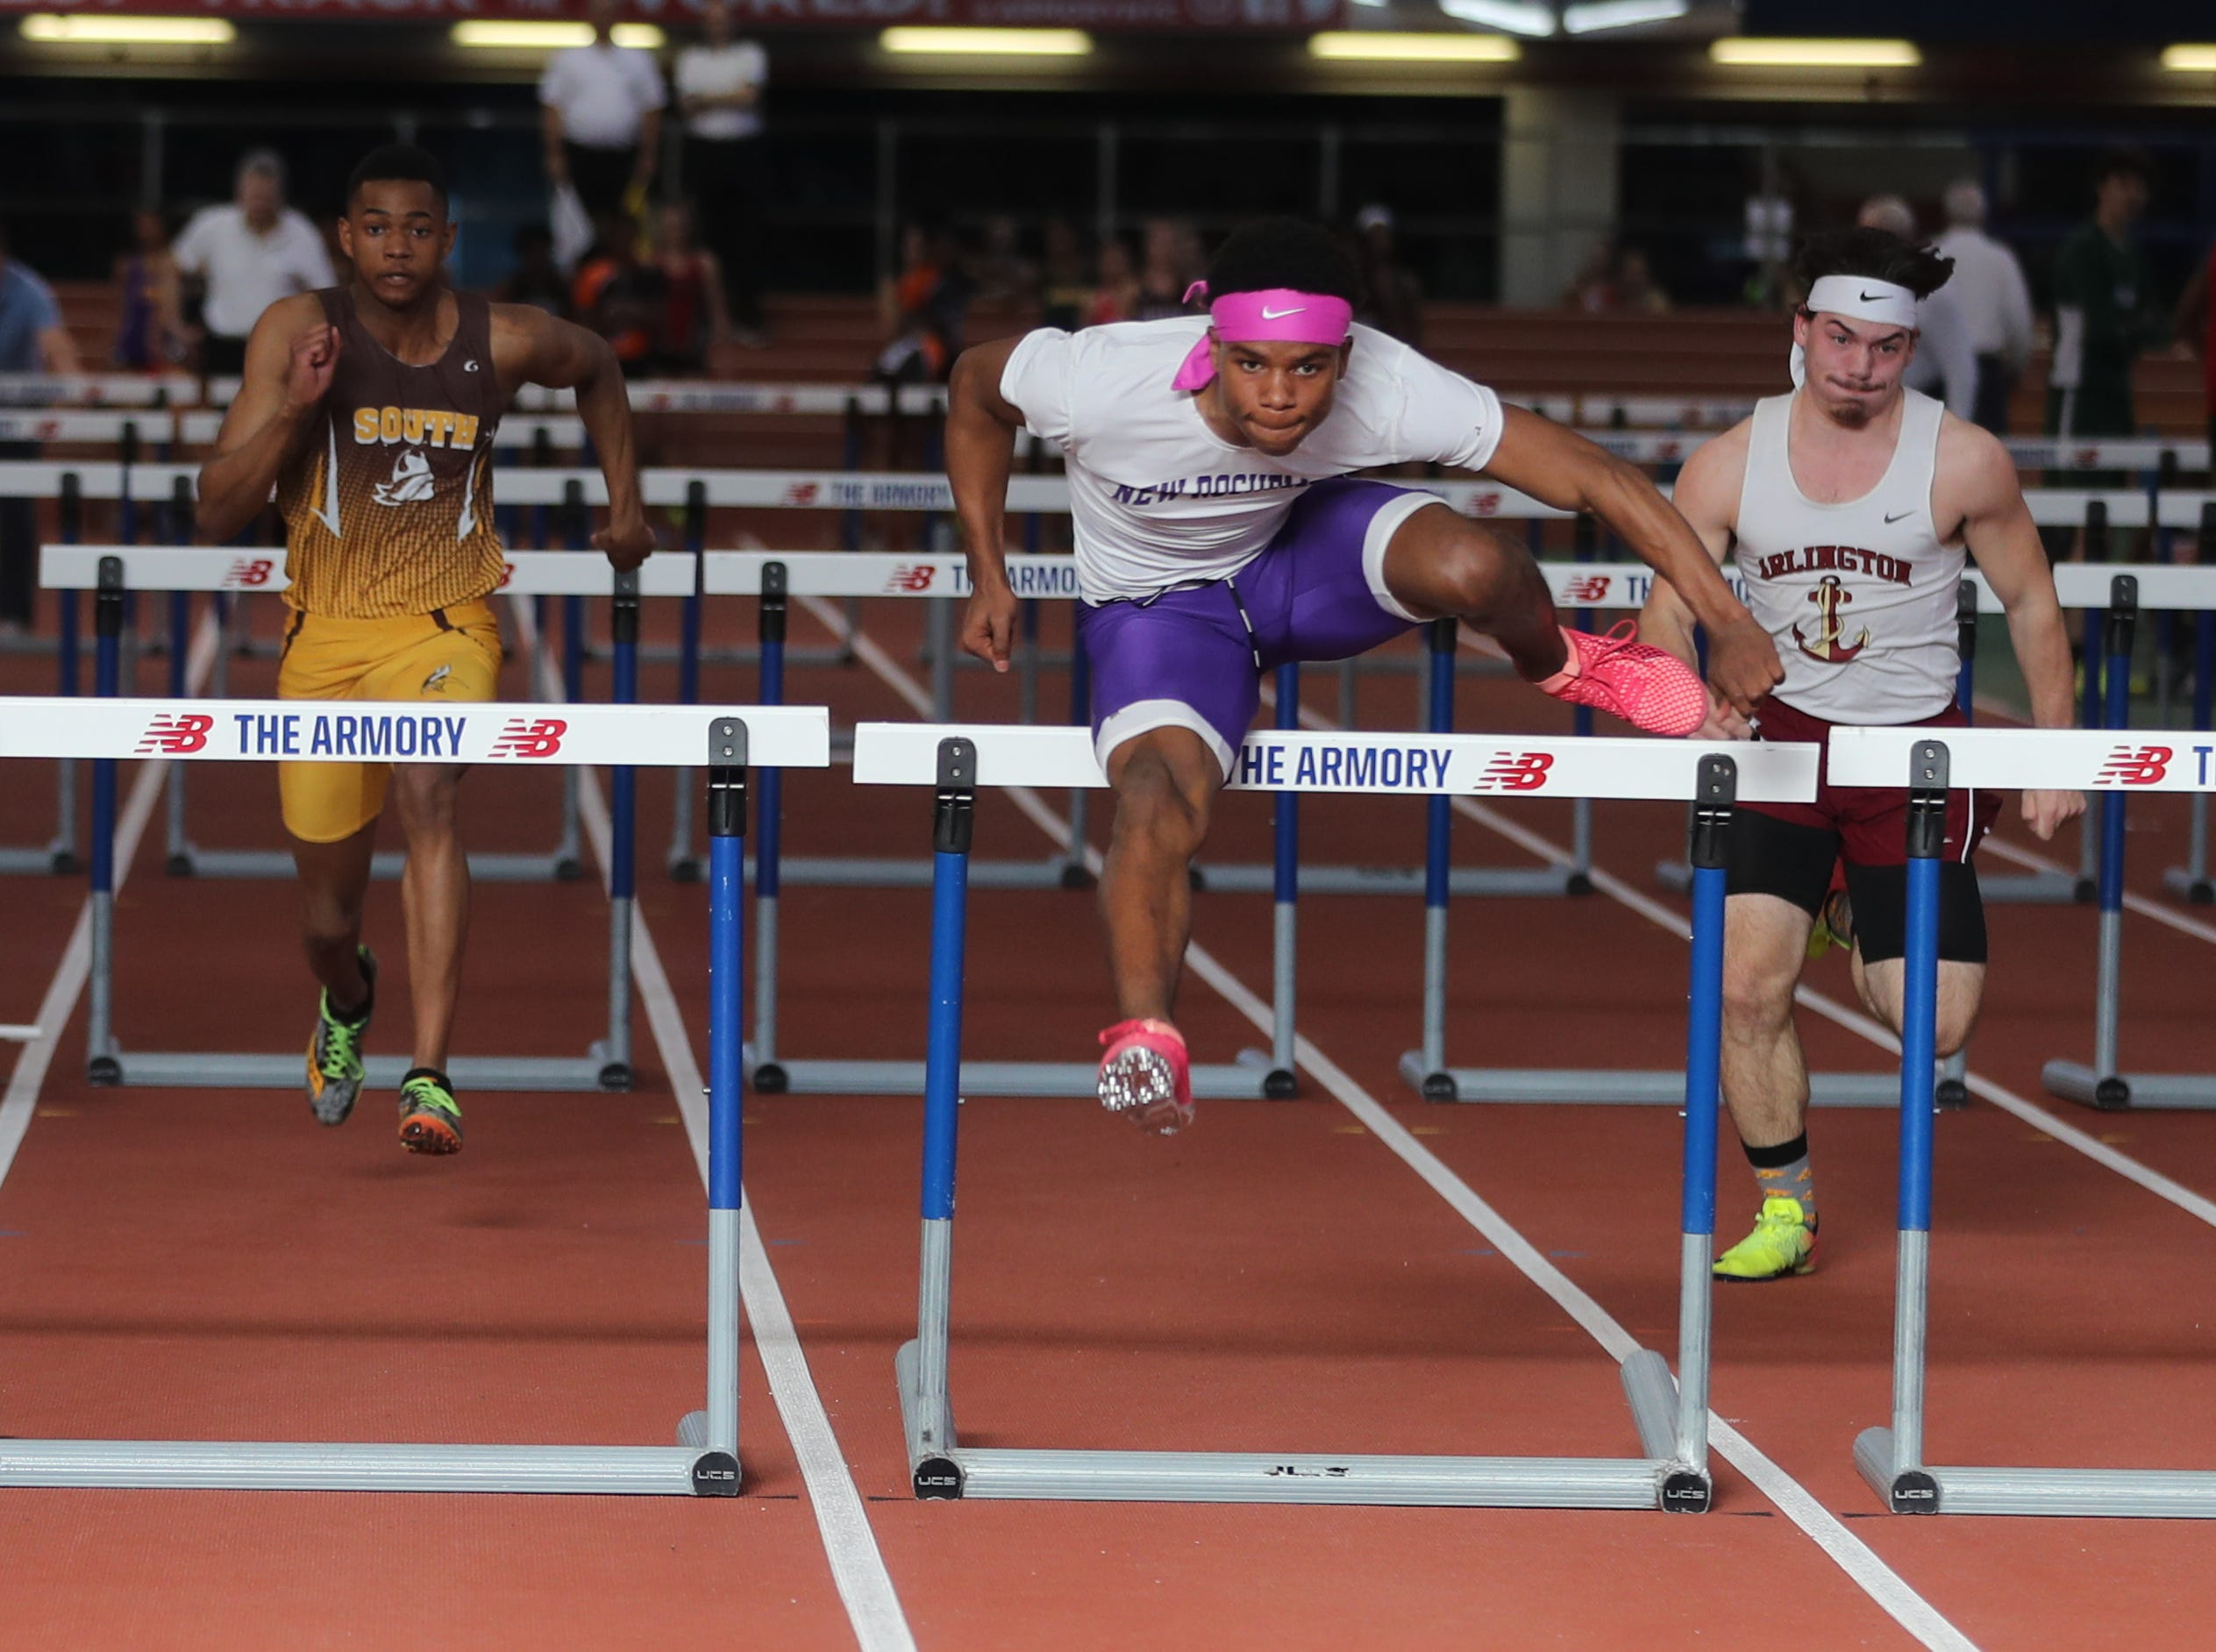 Jessie Parson of New Rochelle won his heat in the 55 meter hurdles during the Section 1 New York State Track and Field State Qualifier at the New Balance Armory in Manhattan Feb. 17, 2019.